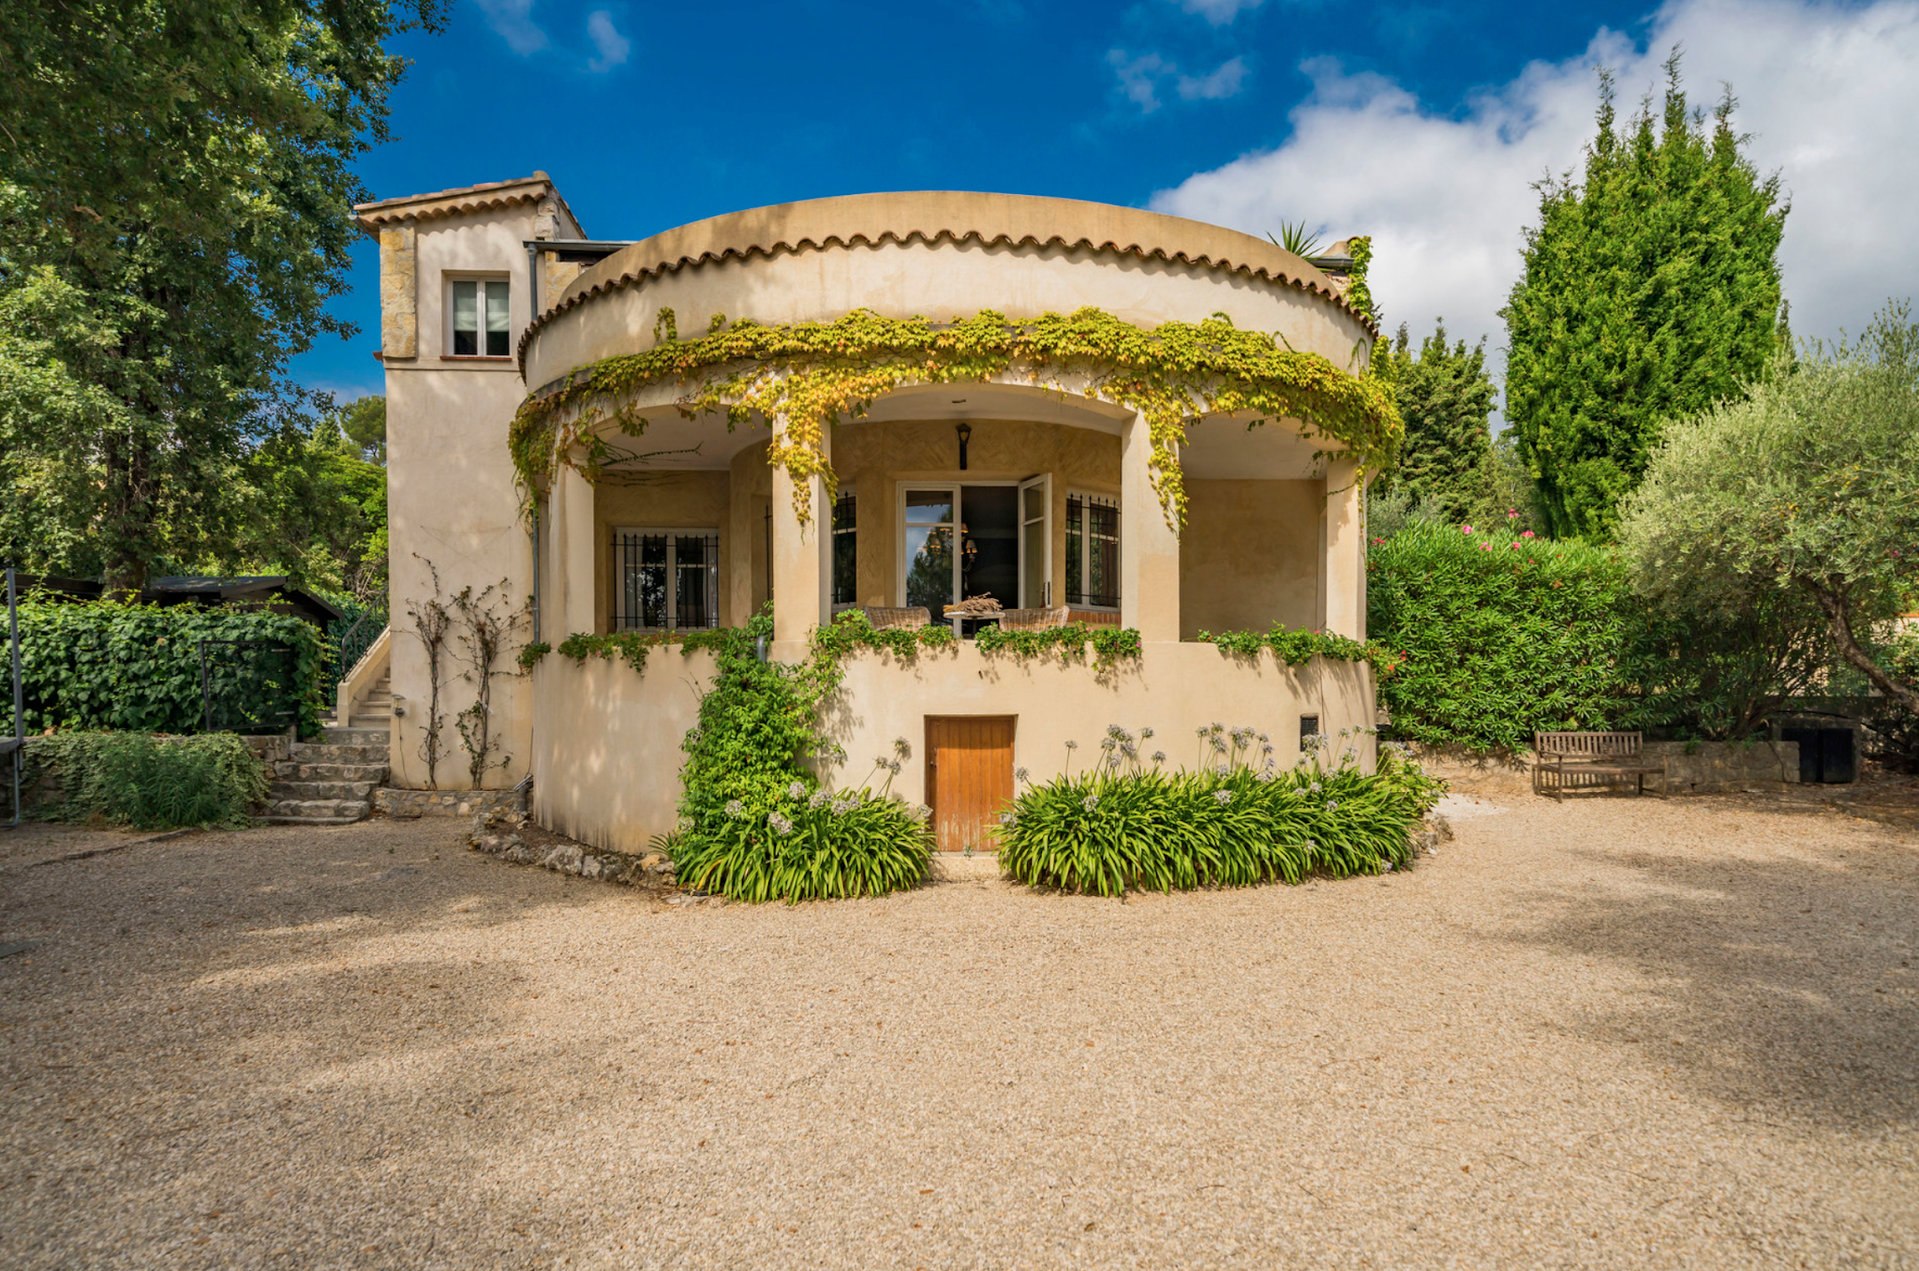 Lovely art deco villa 10 min. walk from the village